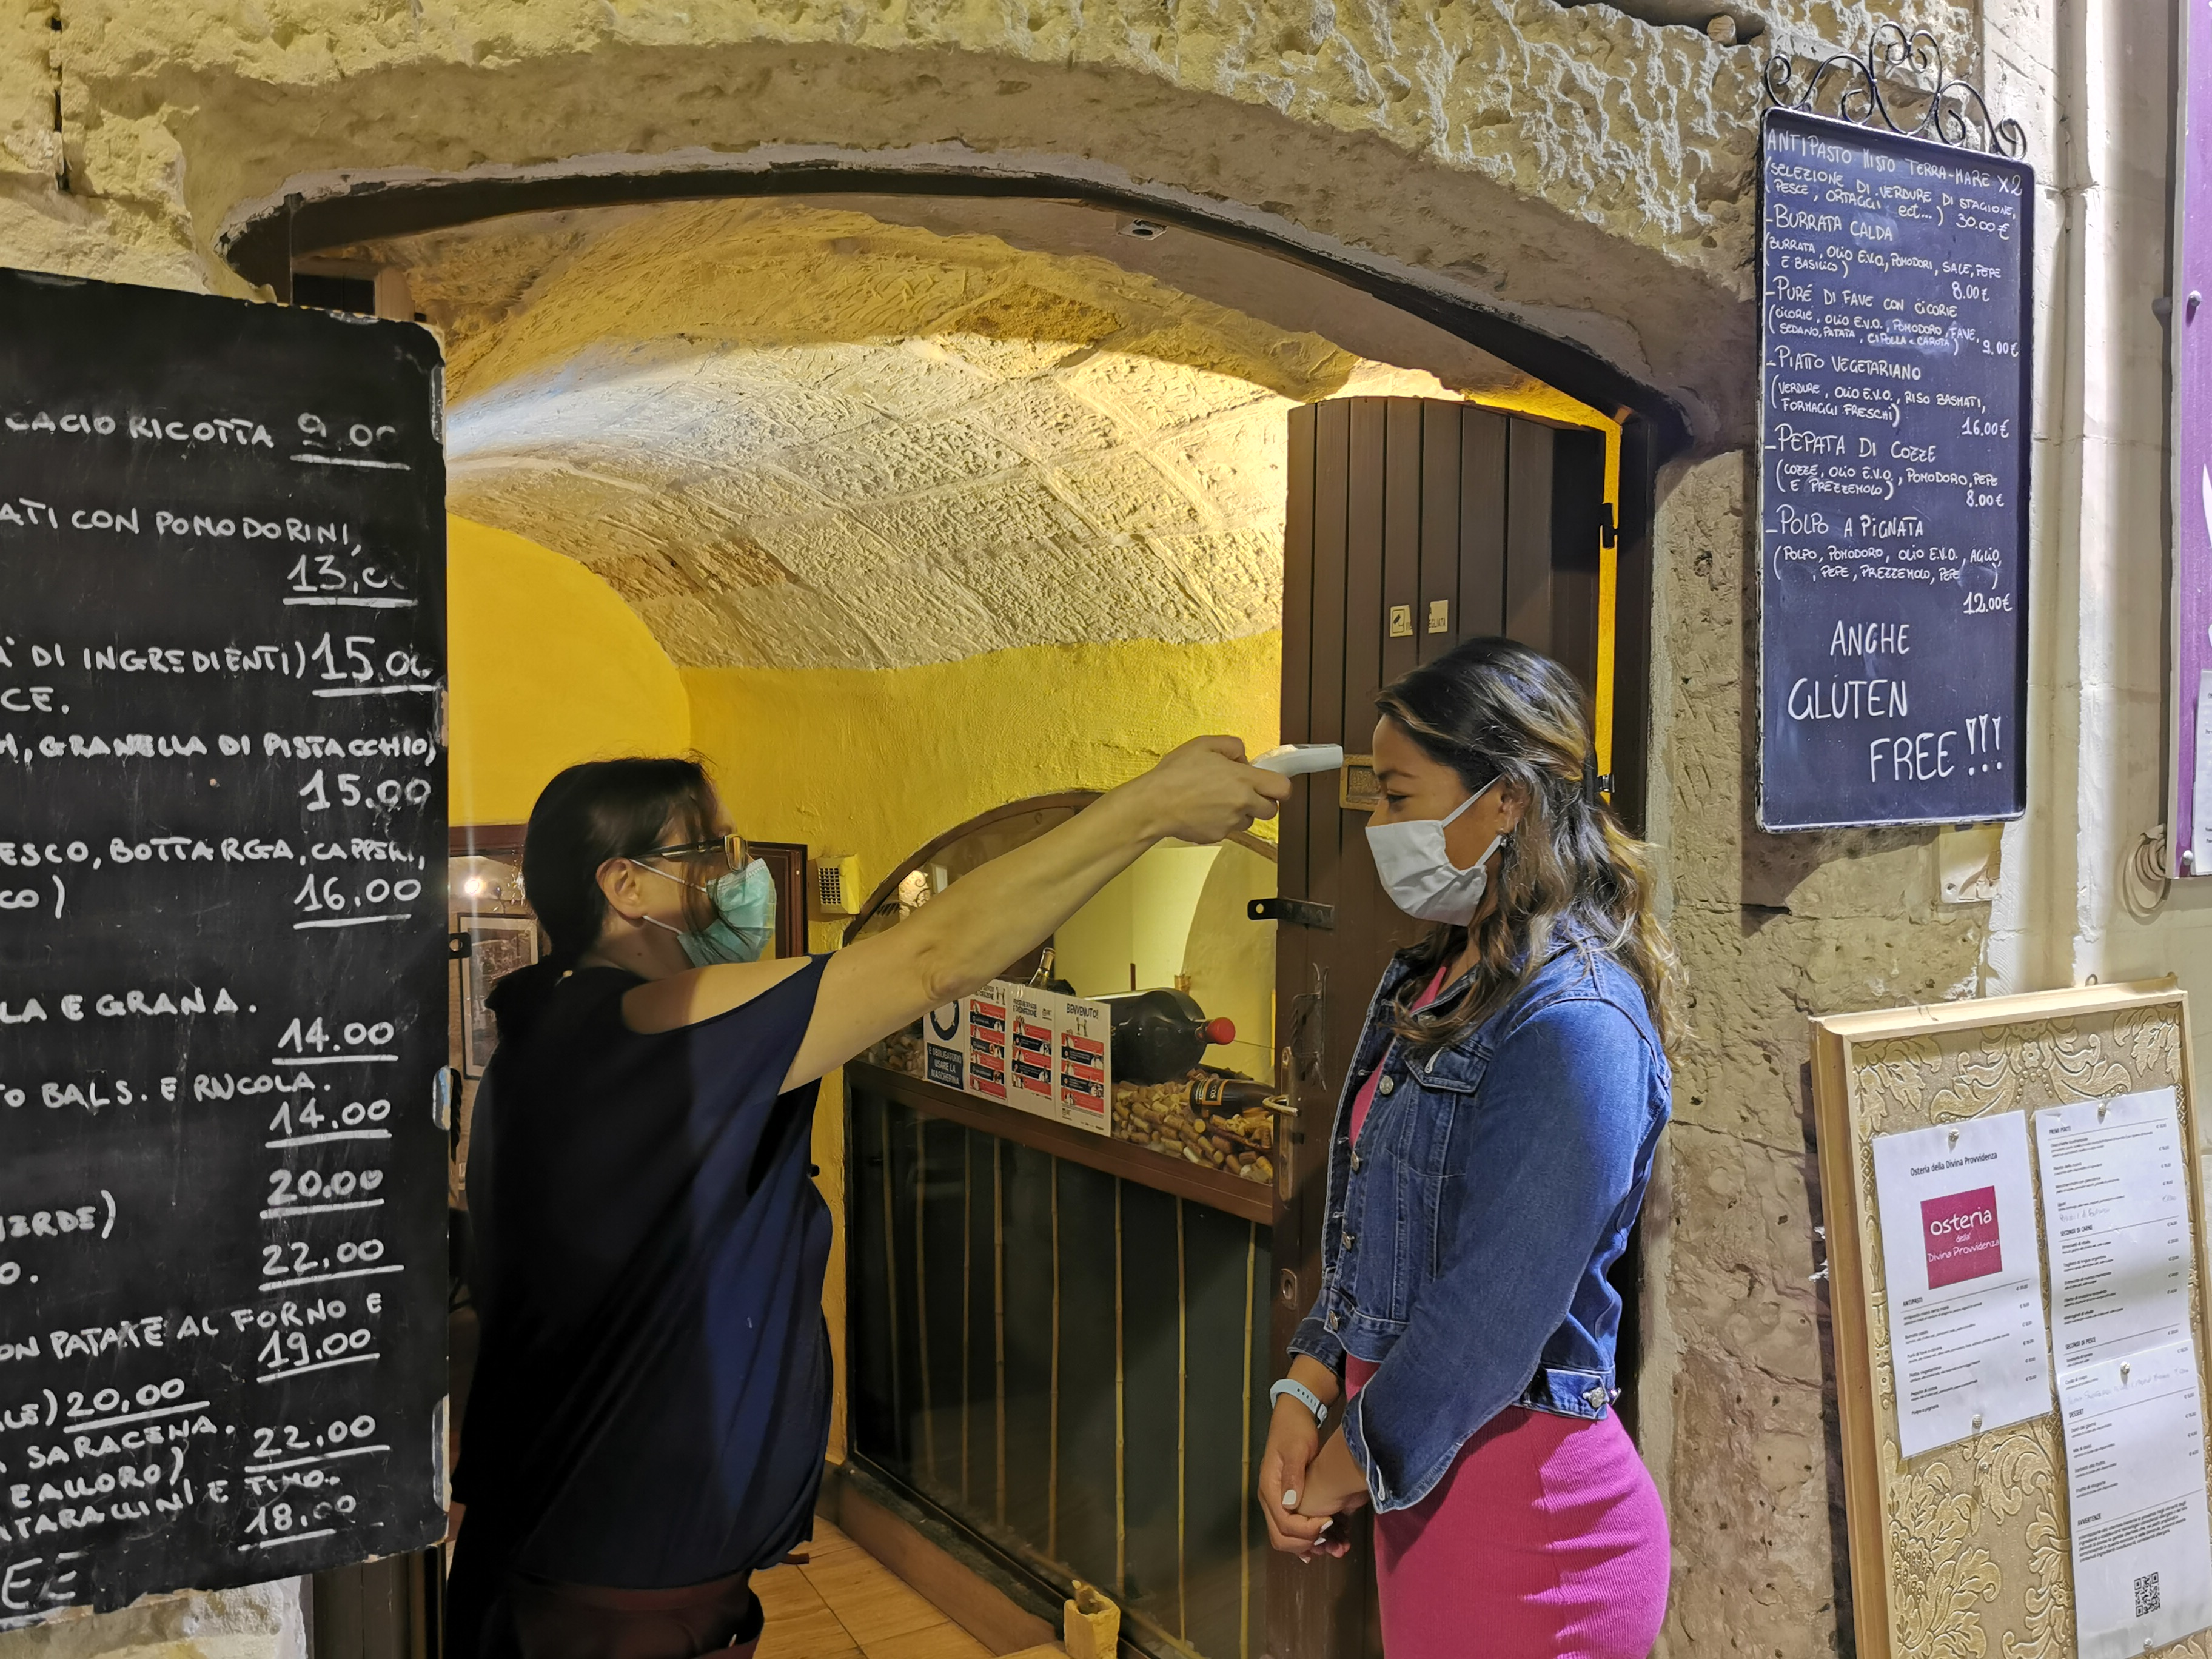 Temperature checks are carried out before entering osterias and hotels